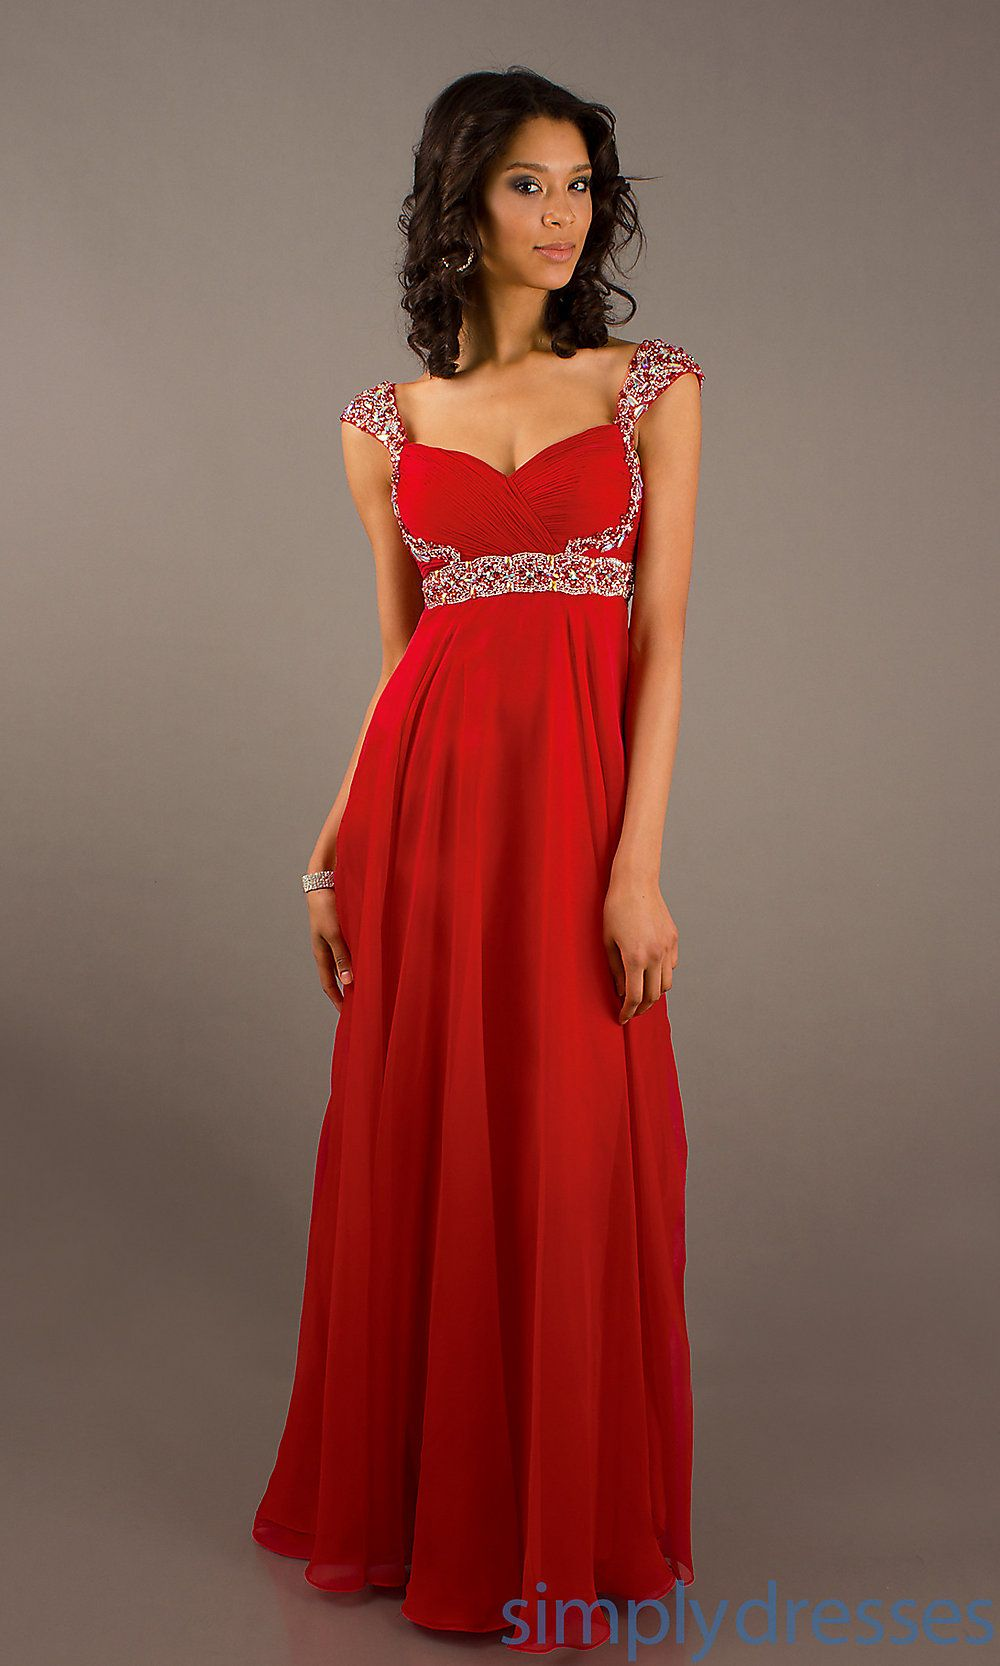 red long dresses - Buscar con Google